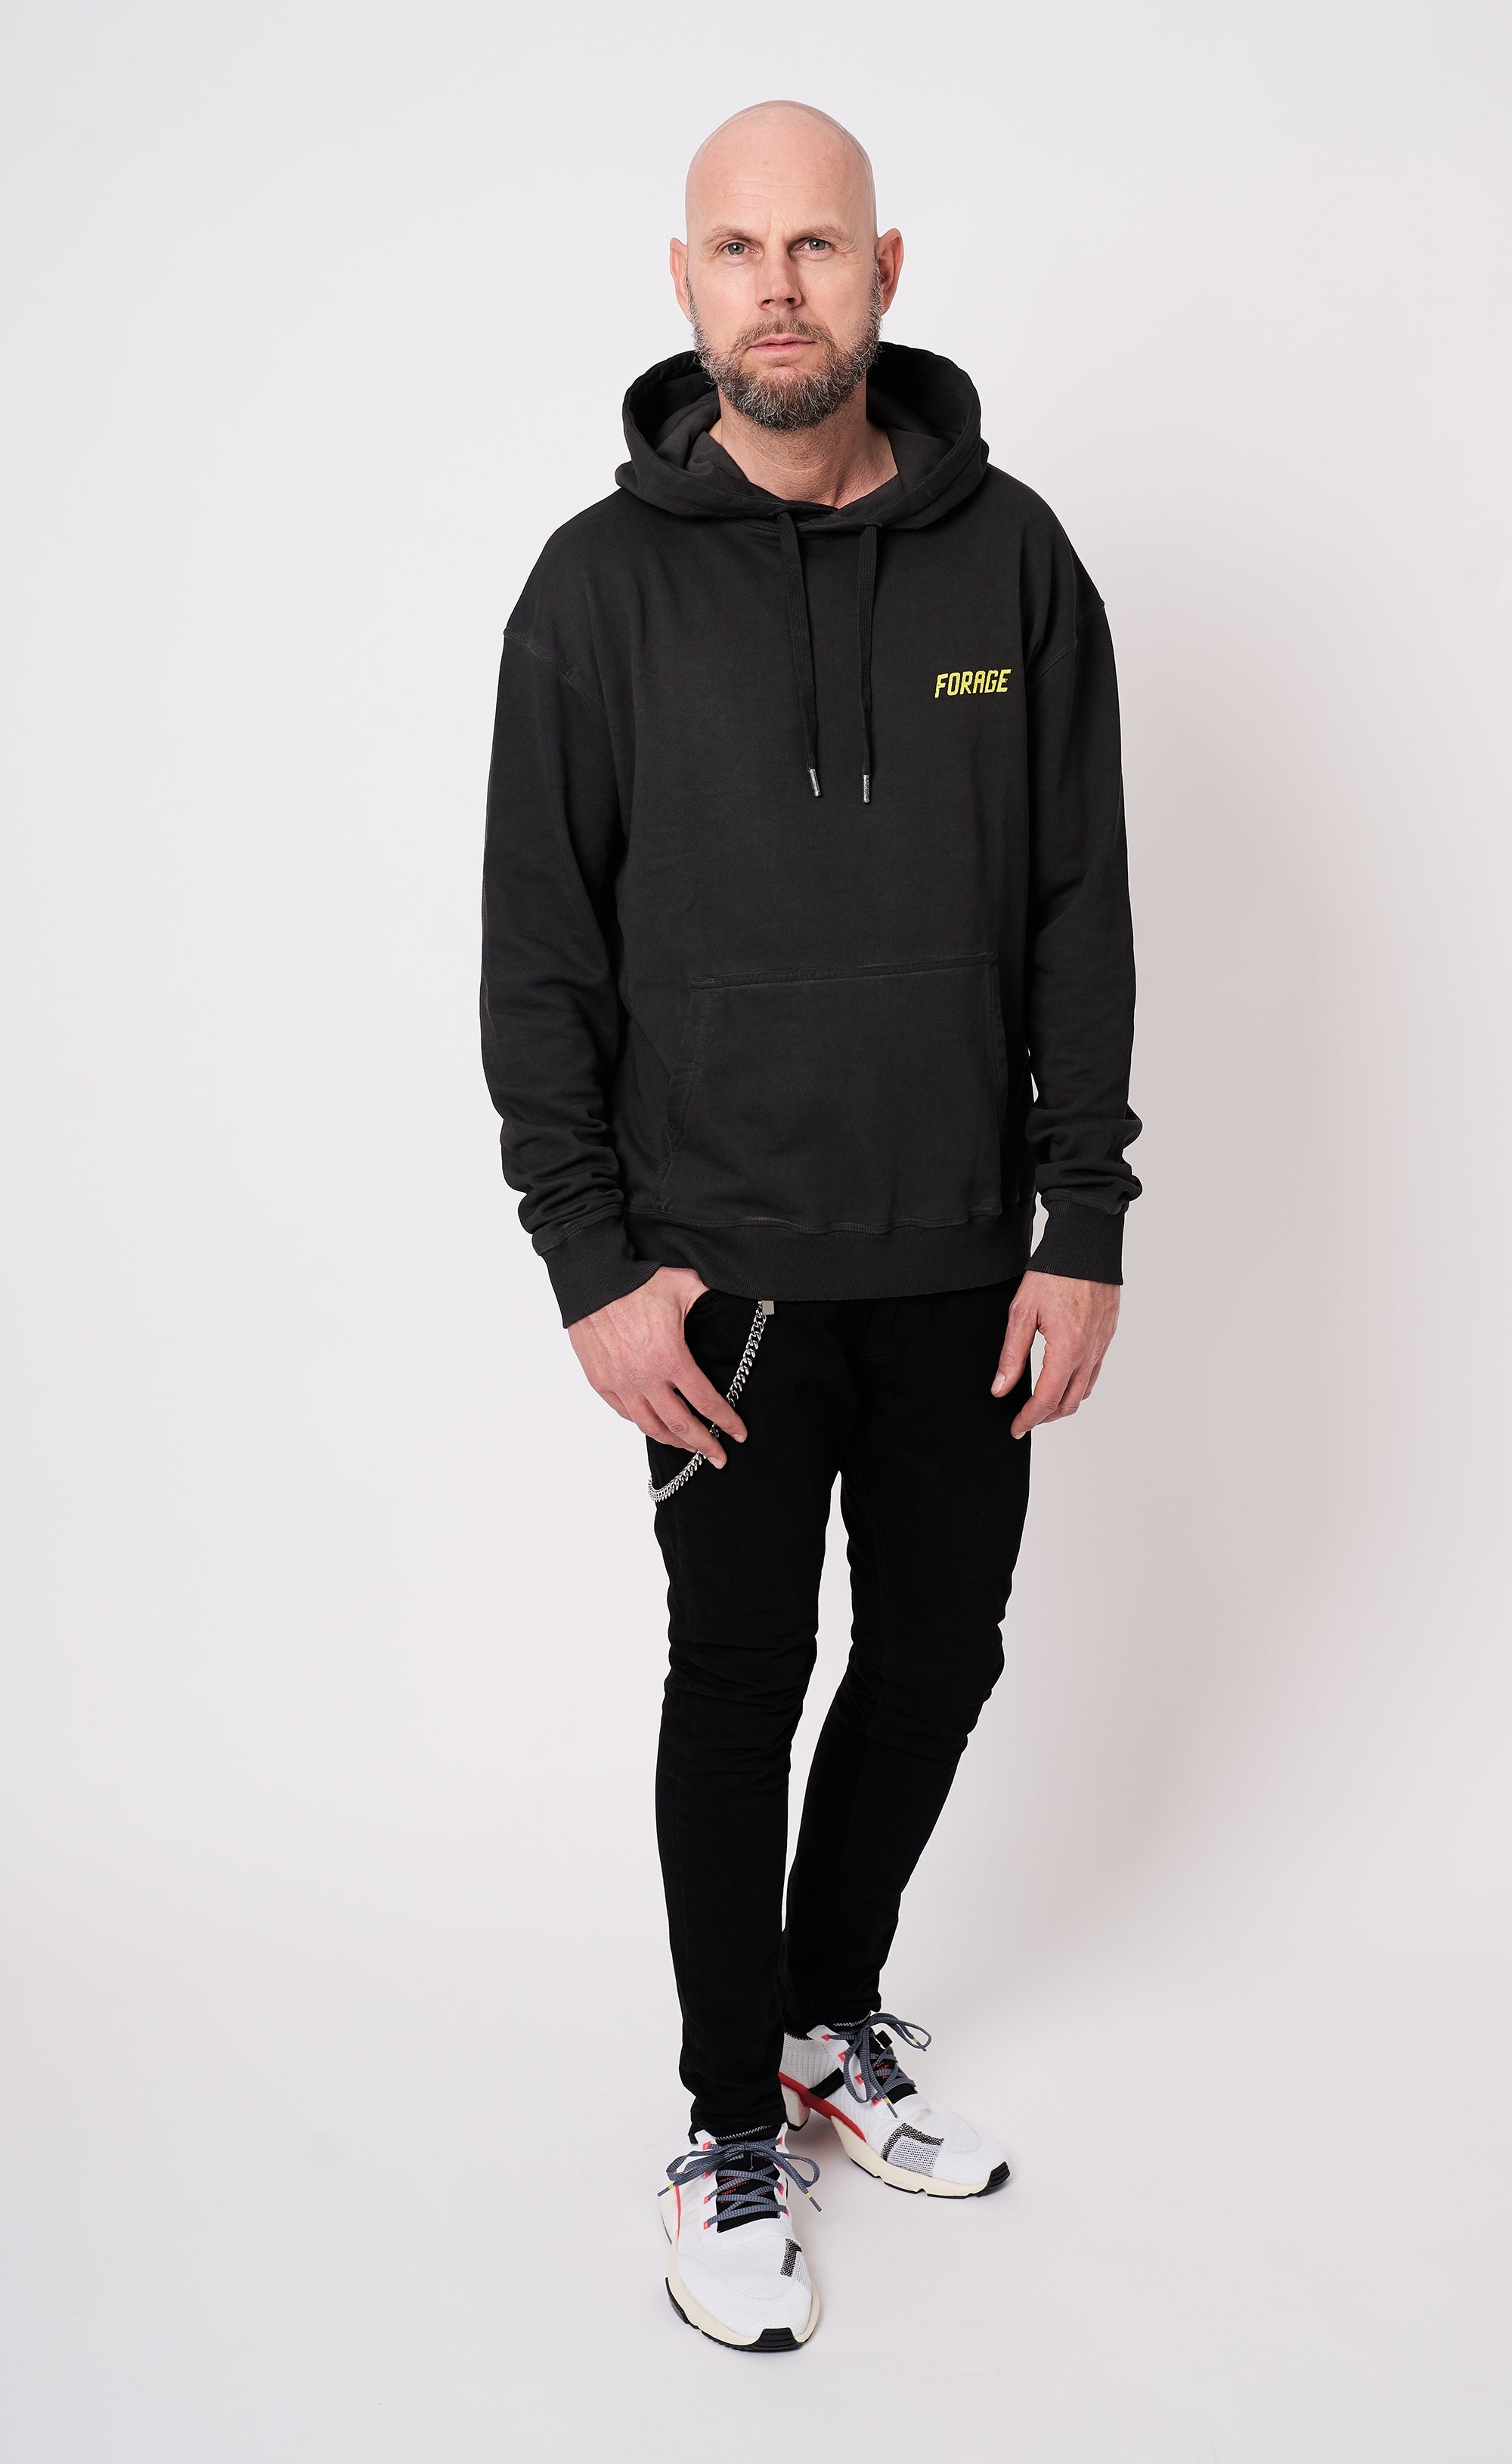 WASHED HOODIE - NO SEASON - Forage-Clothing